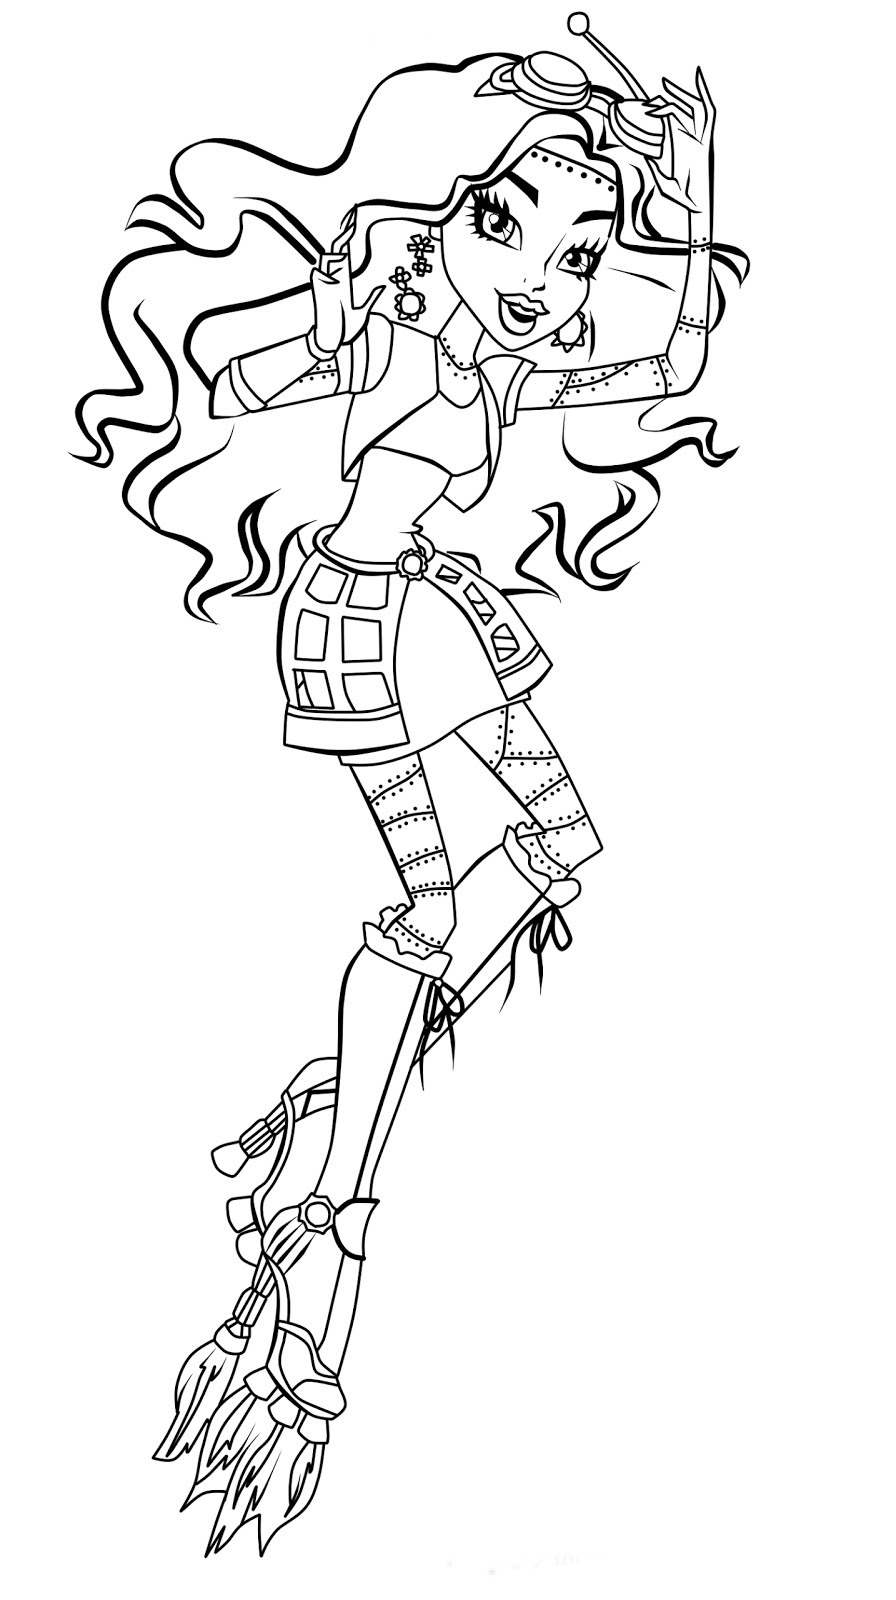 monster high pictures to print monster high to print monster high kids coloring pages print pictures high monster to